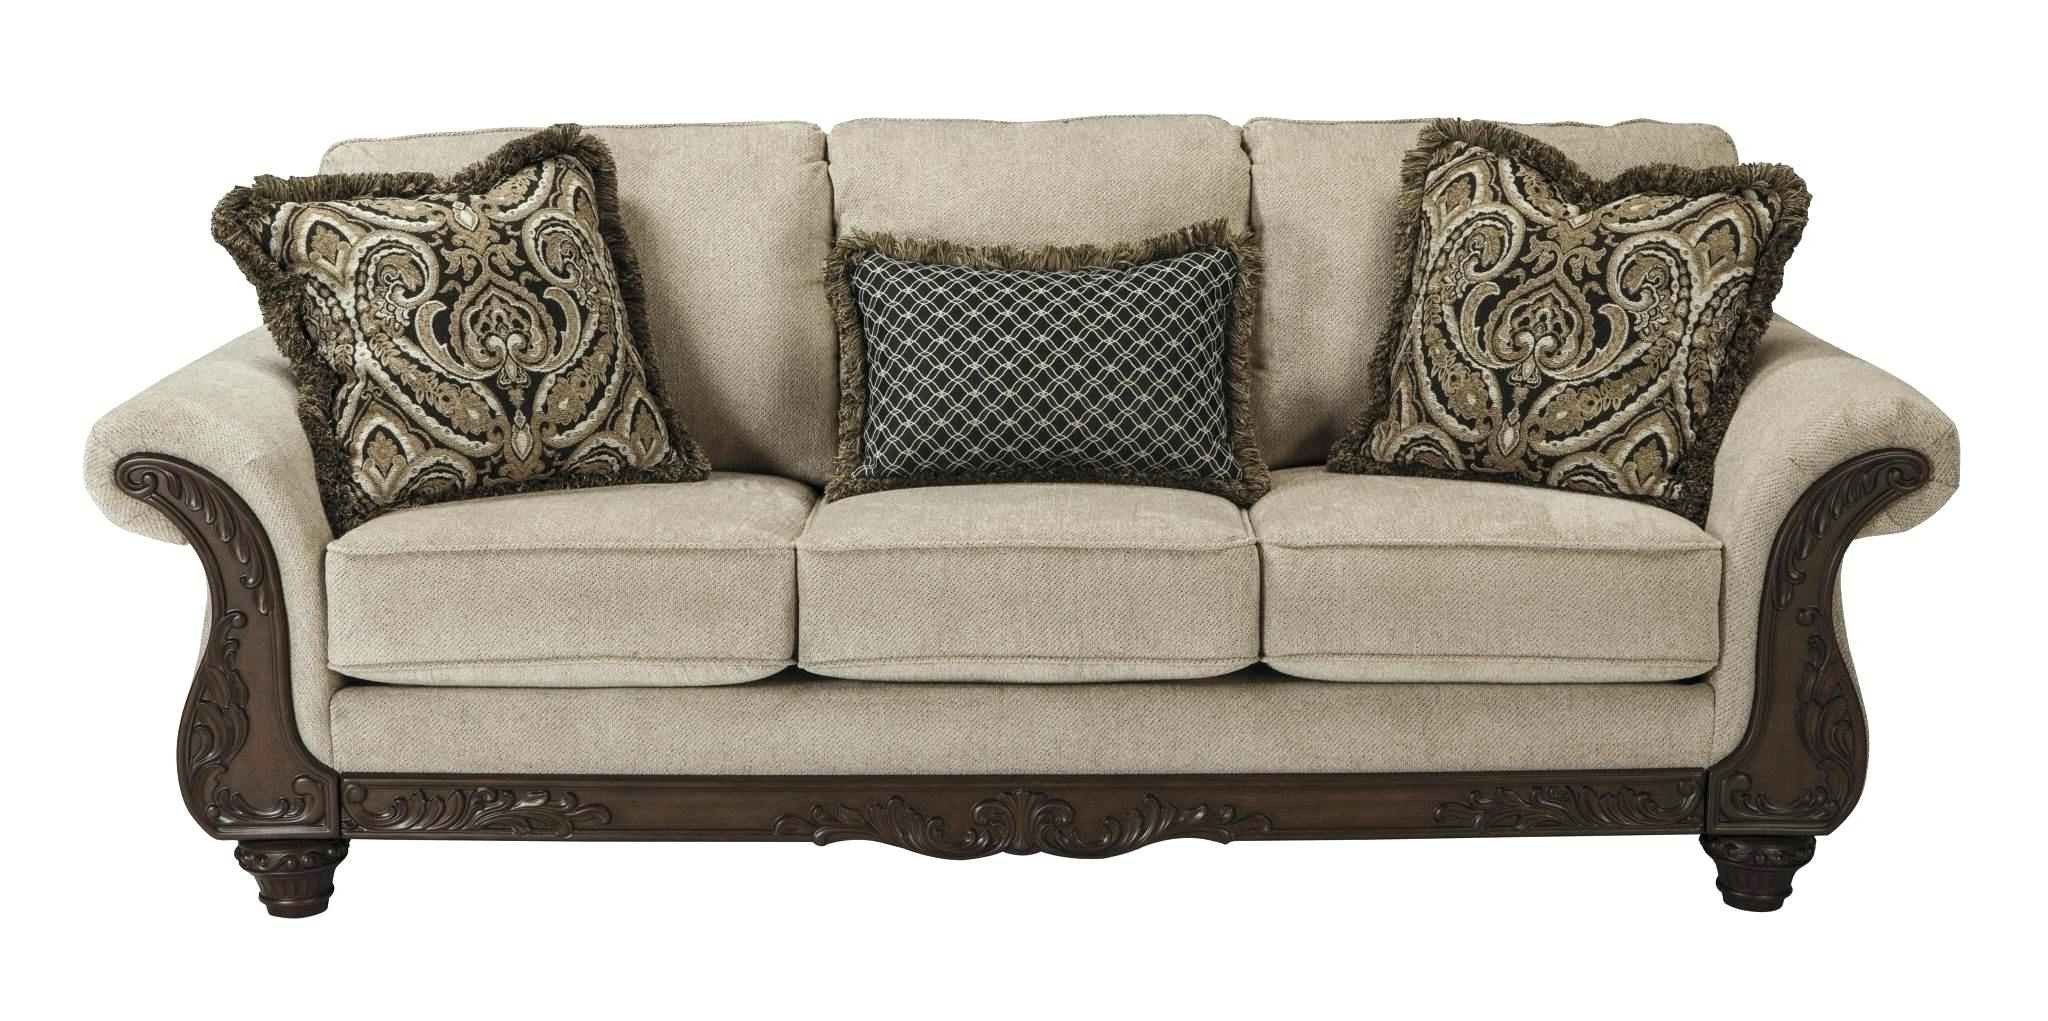 Fancy Sofas For Well Known Decoration: Fancy Sofas (View 11 of 15)